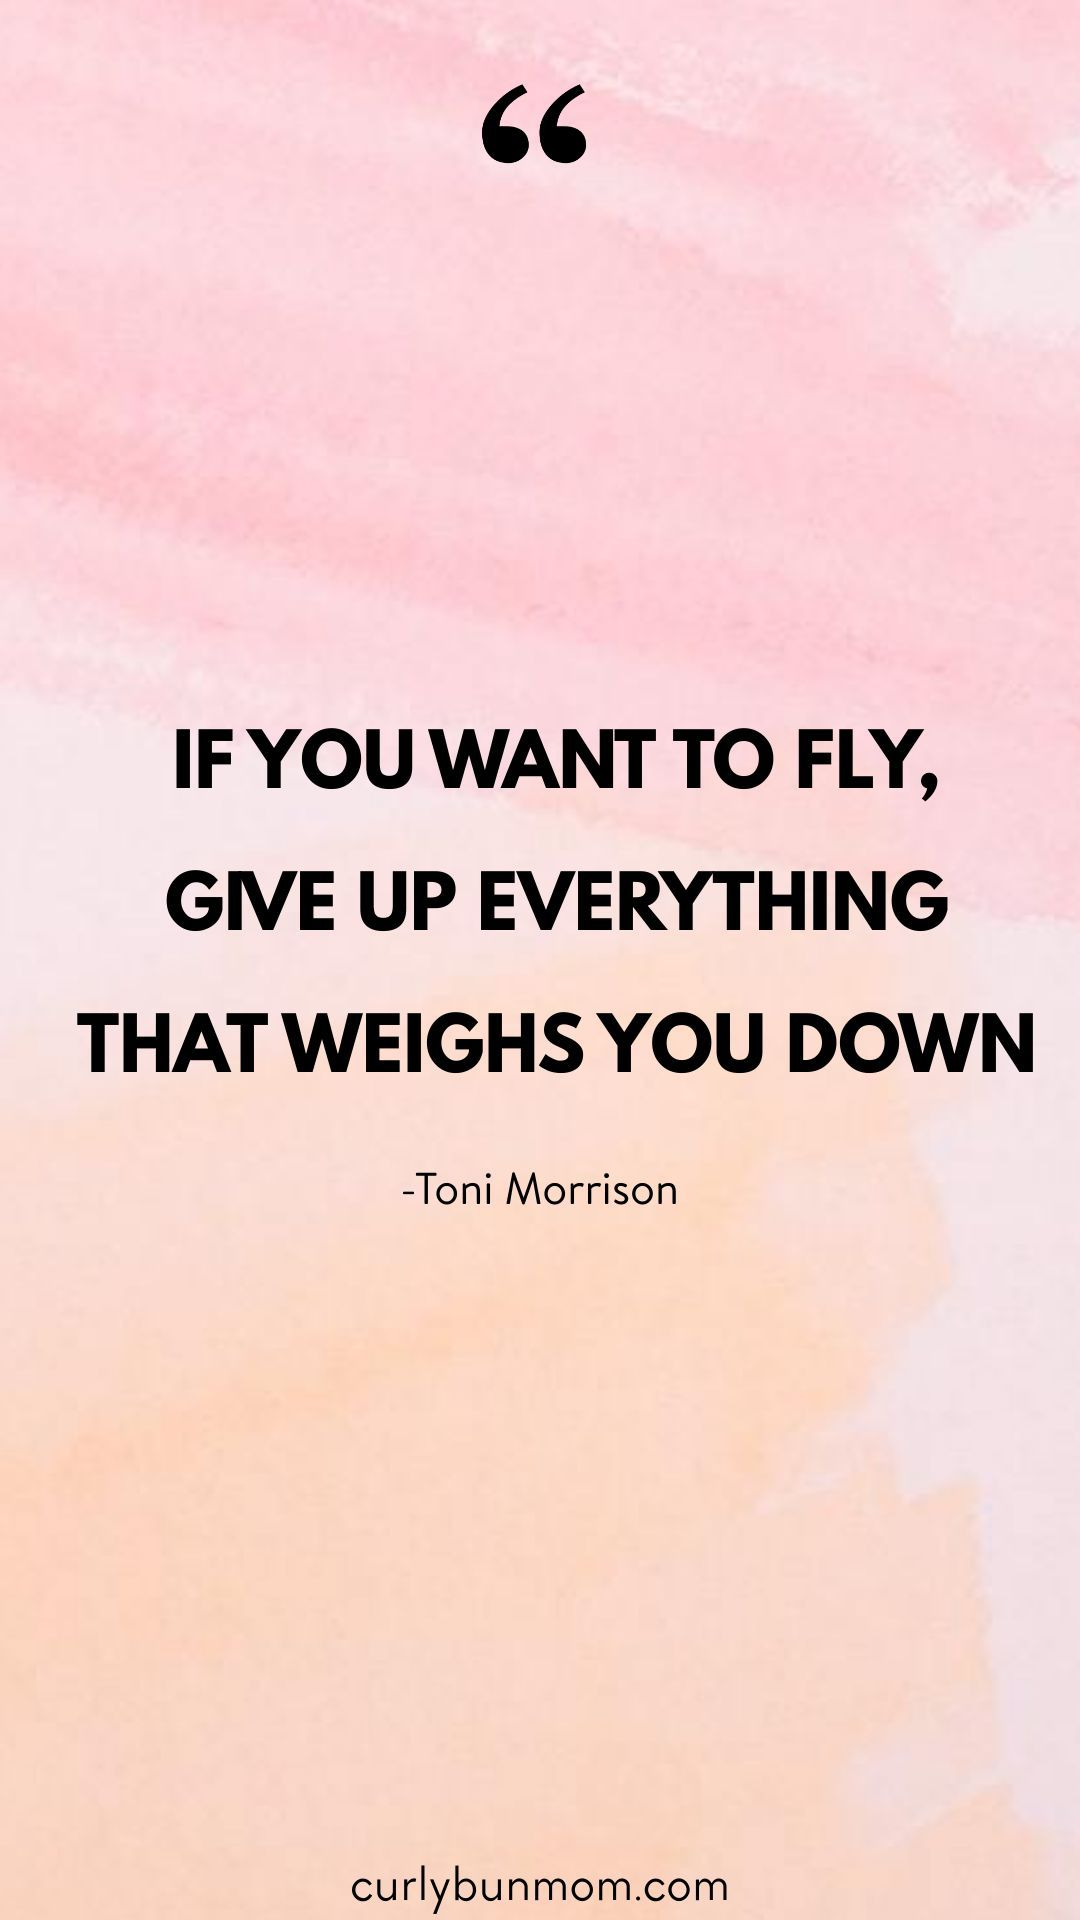 If You Want To Fly, Give Up Everything That Weighs